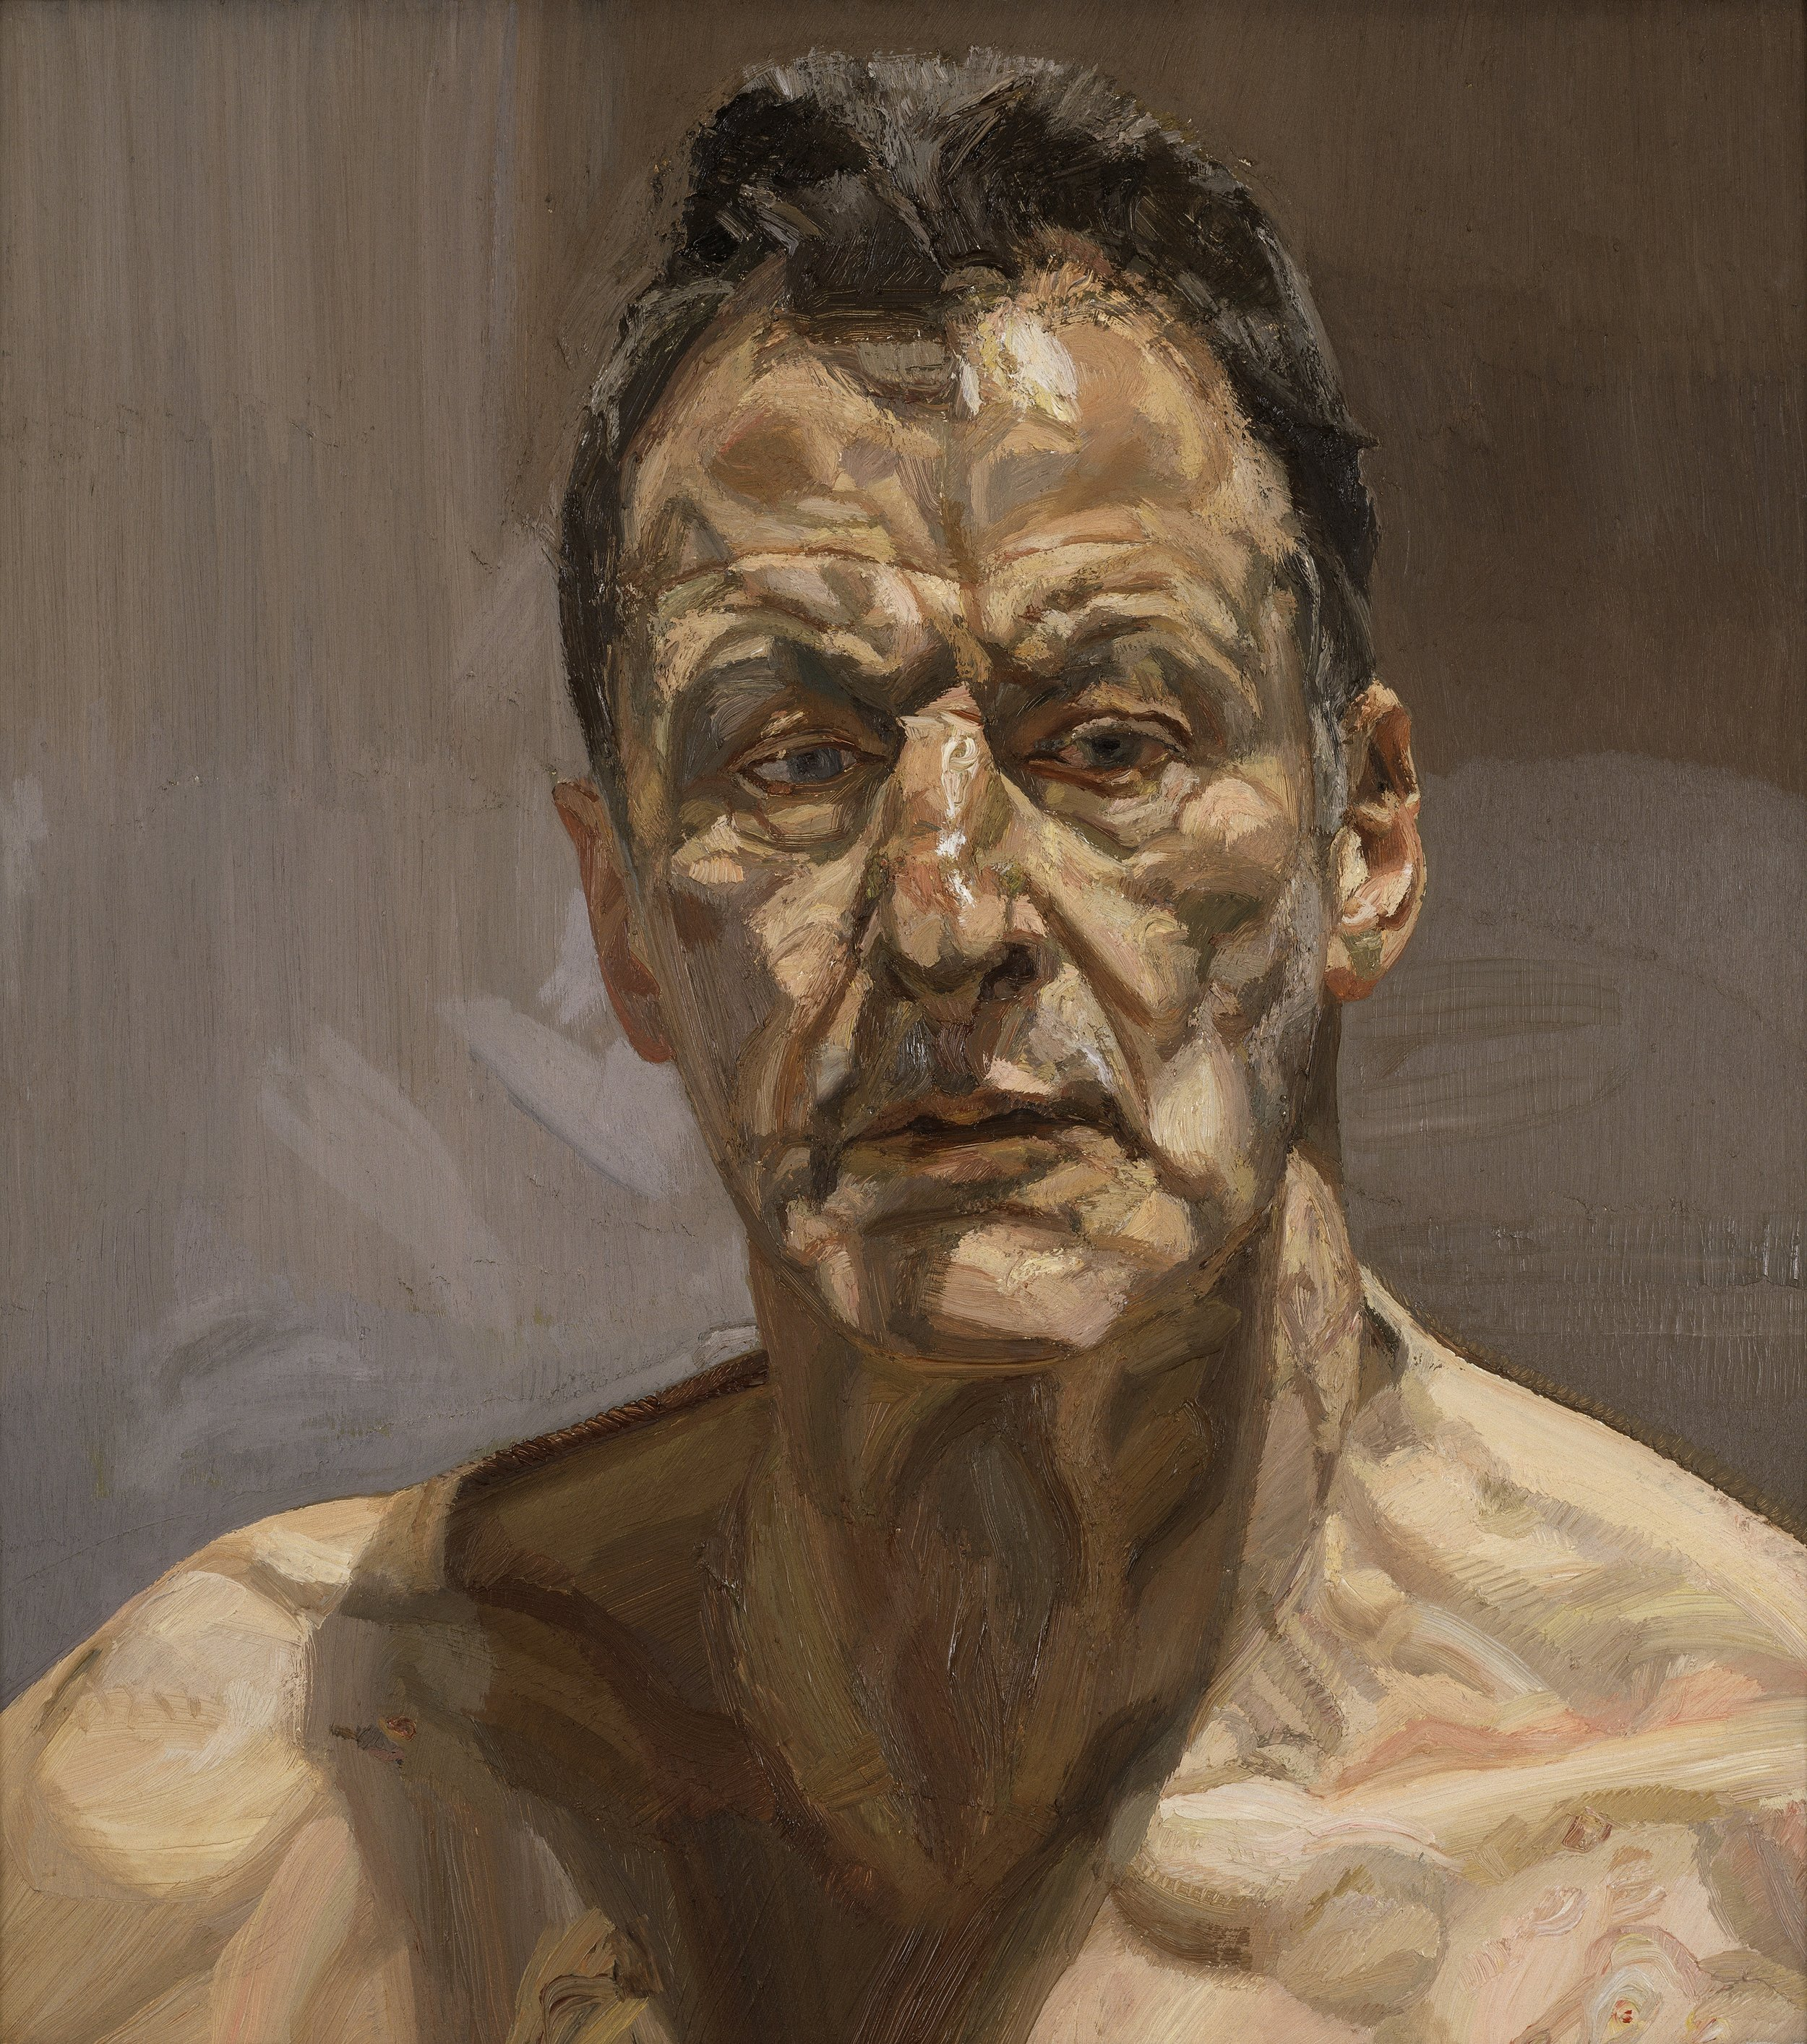 Reflection (Self-portrait),  Lucian Freud, 1985, Private Collection, on loan to The Irish Museum of Modern Art